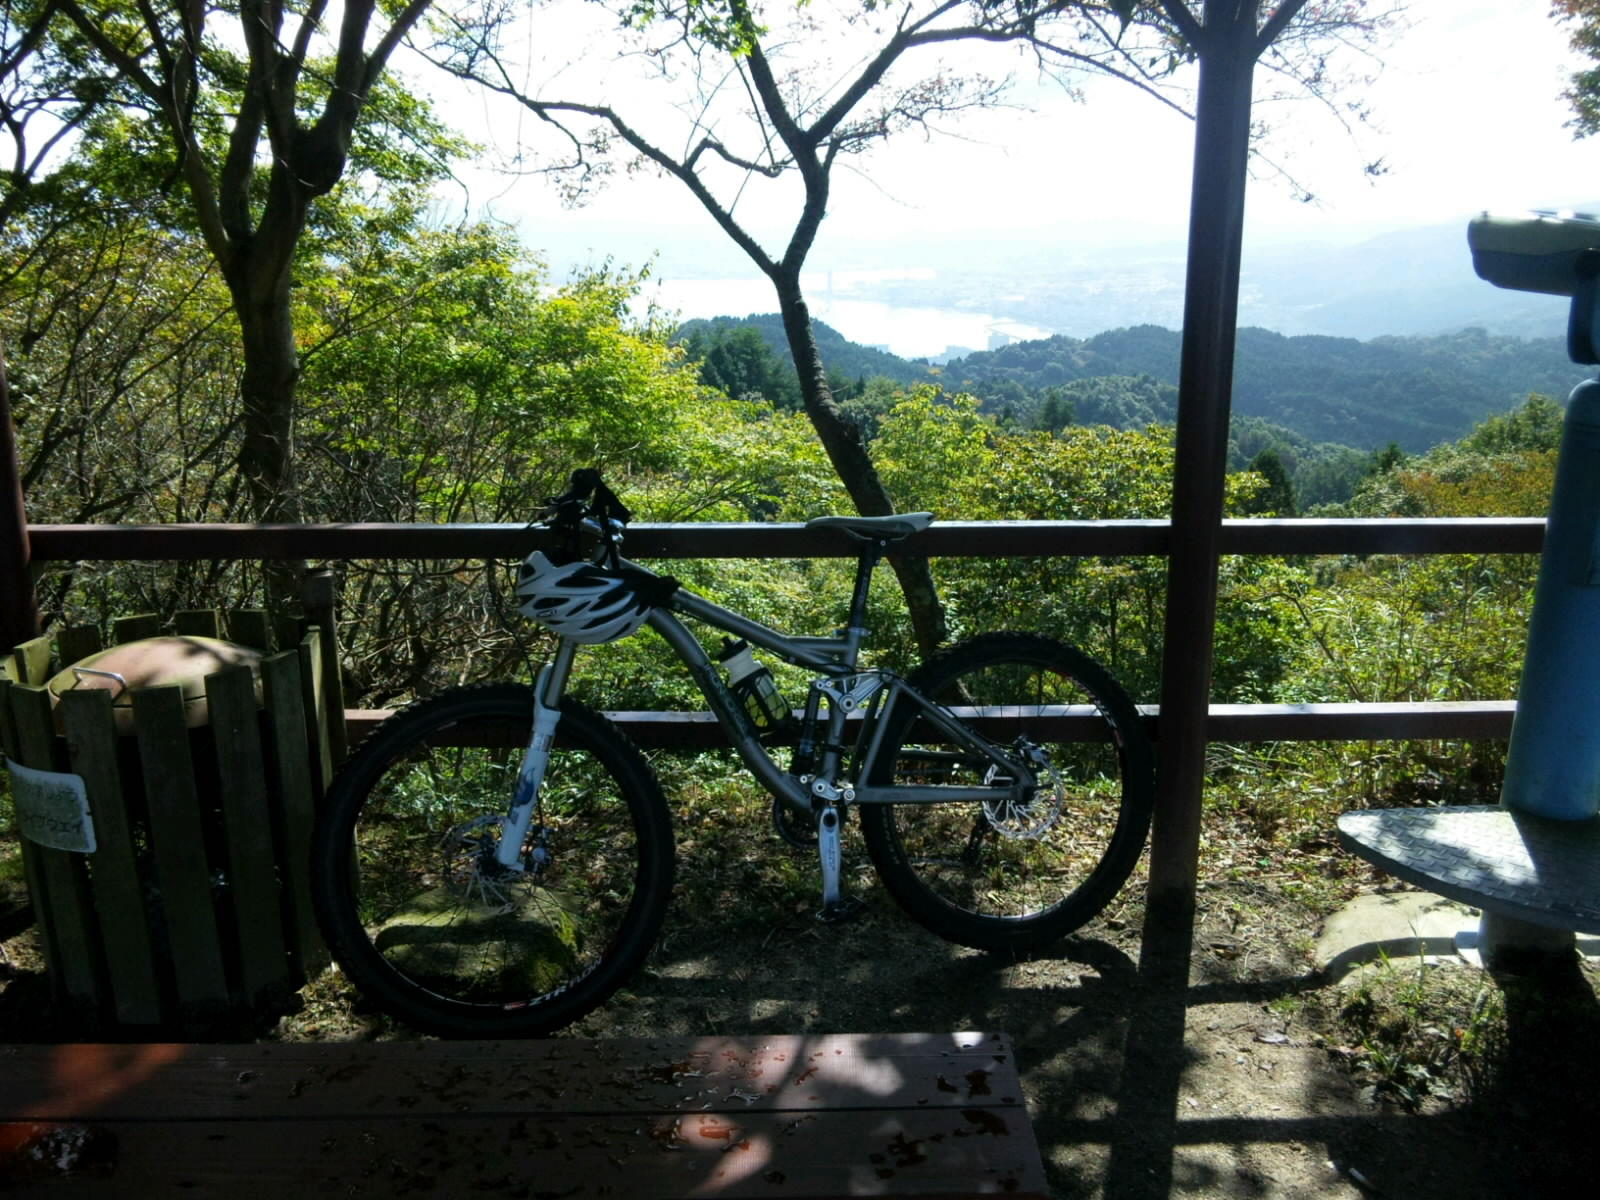 Holy Riding @ Hな山